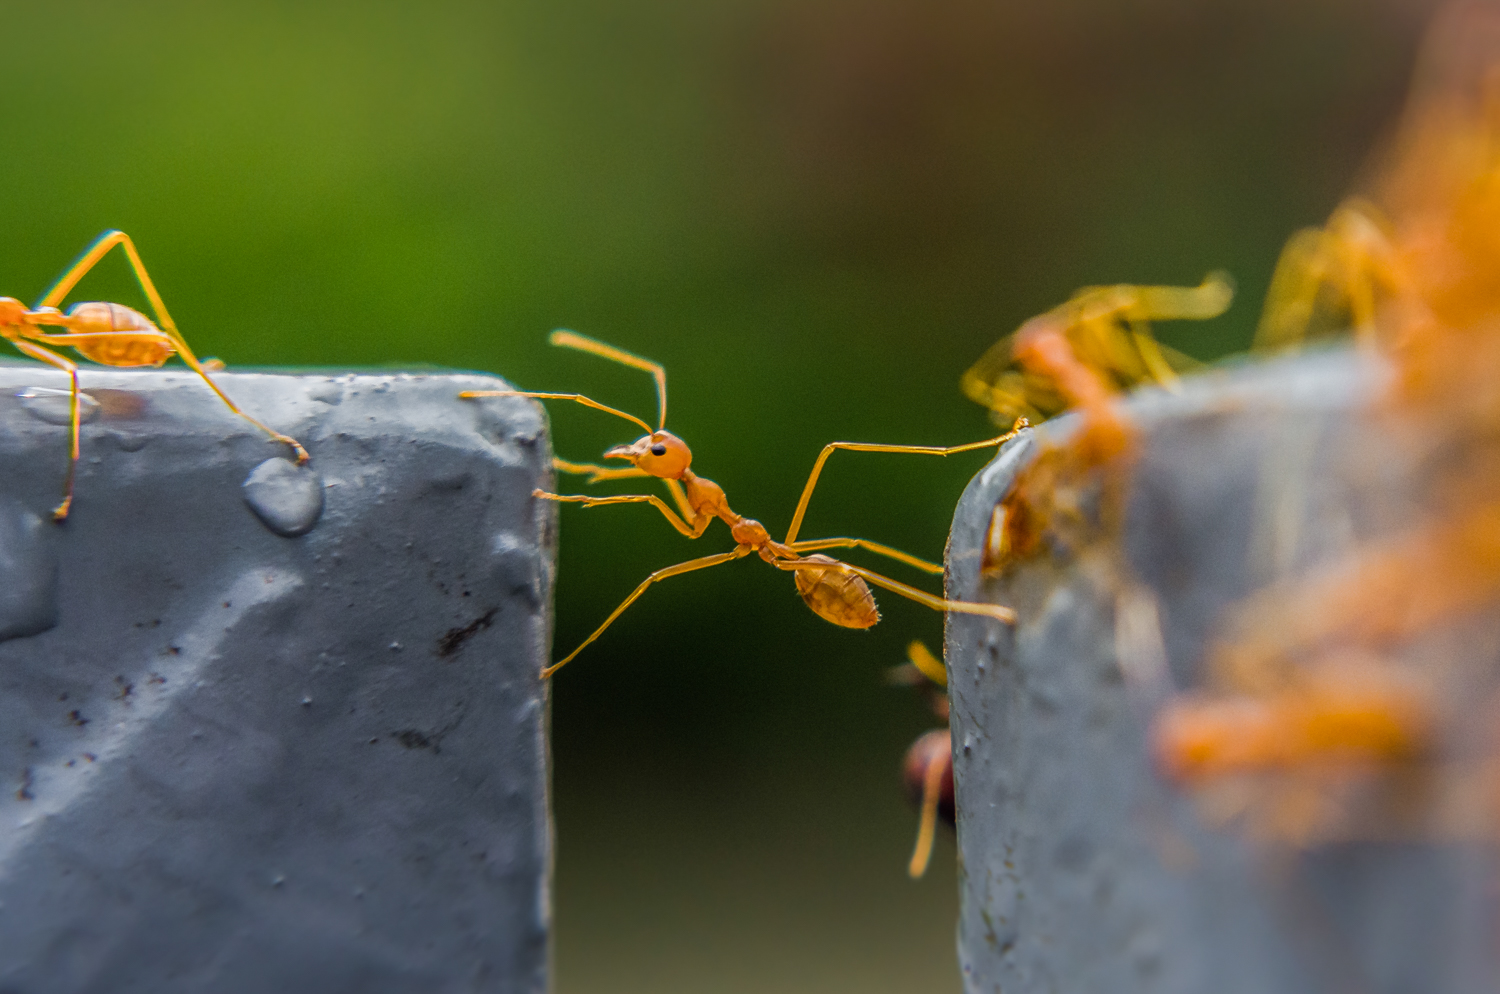 The Ant with an Attitude